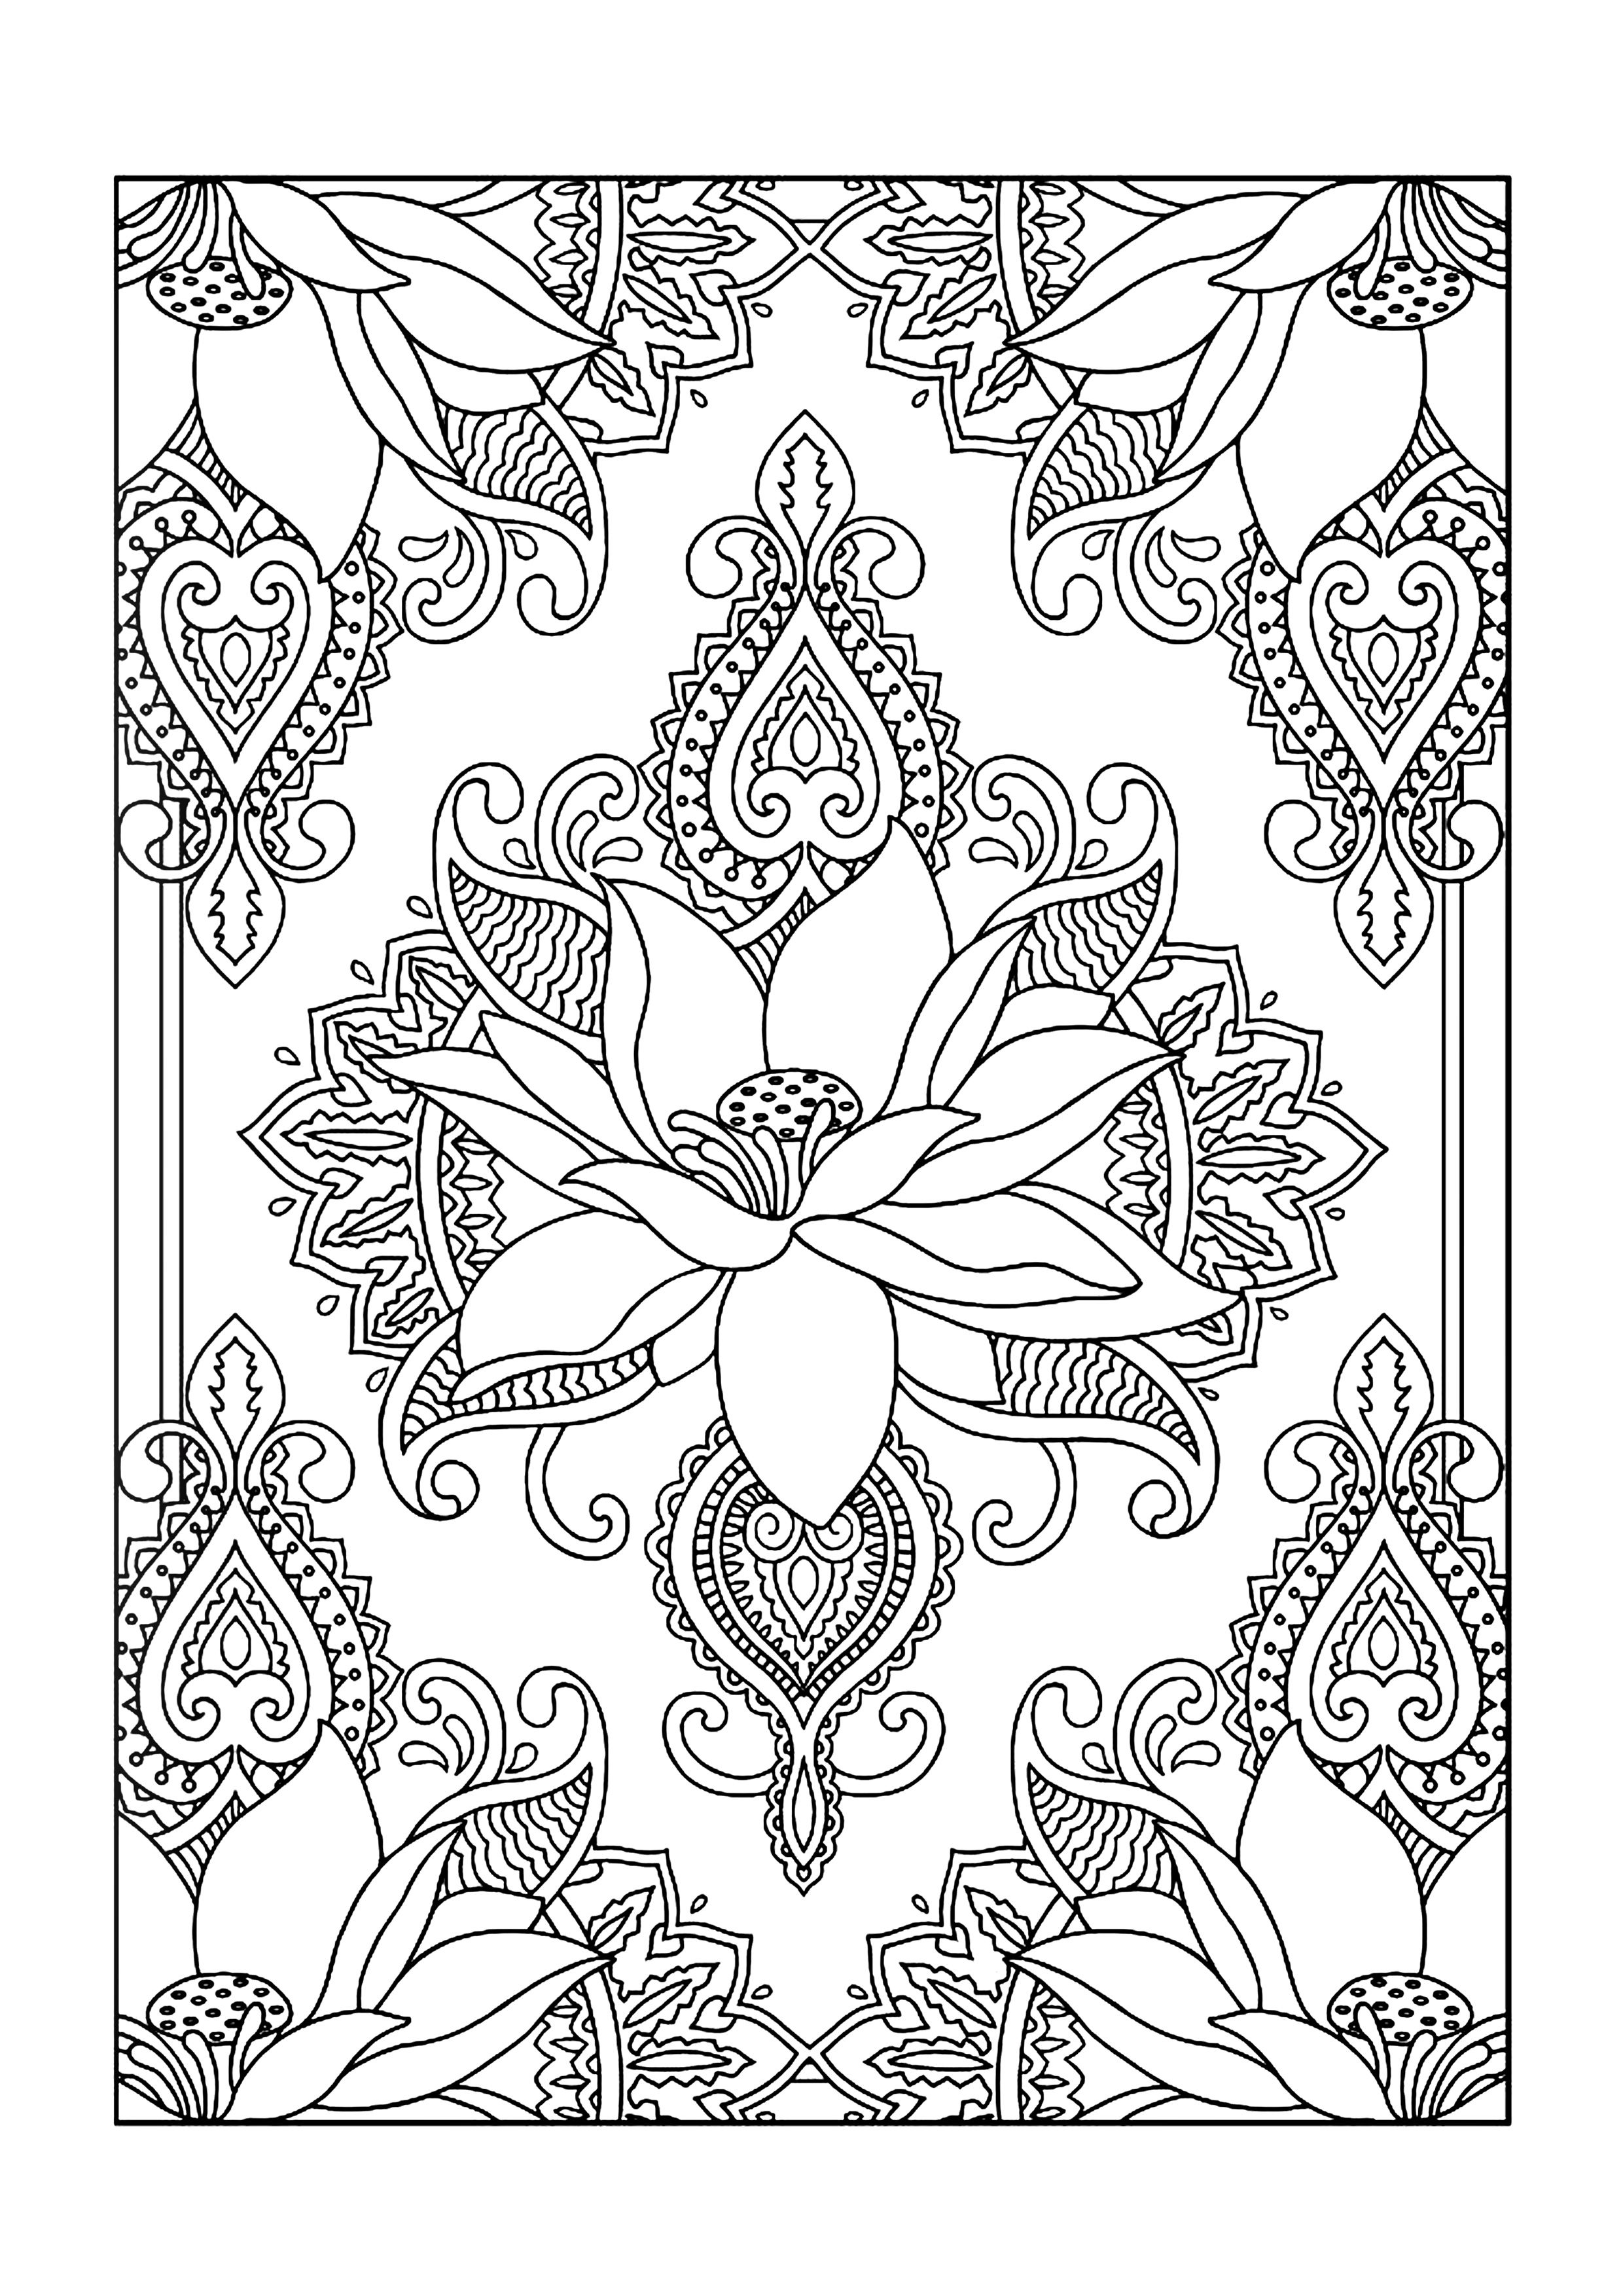 patterns for colouring for adults zen and anti stress coloring pages for adults pattern for patterns colouring for adults